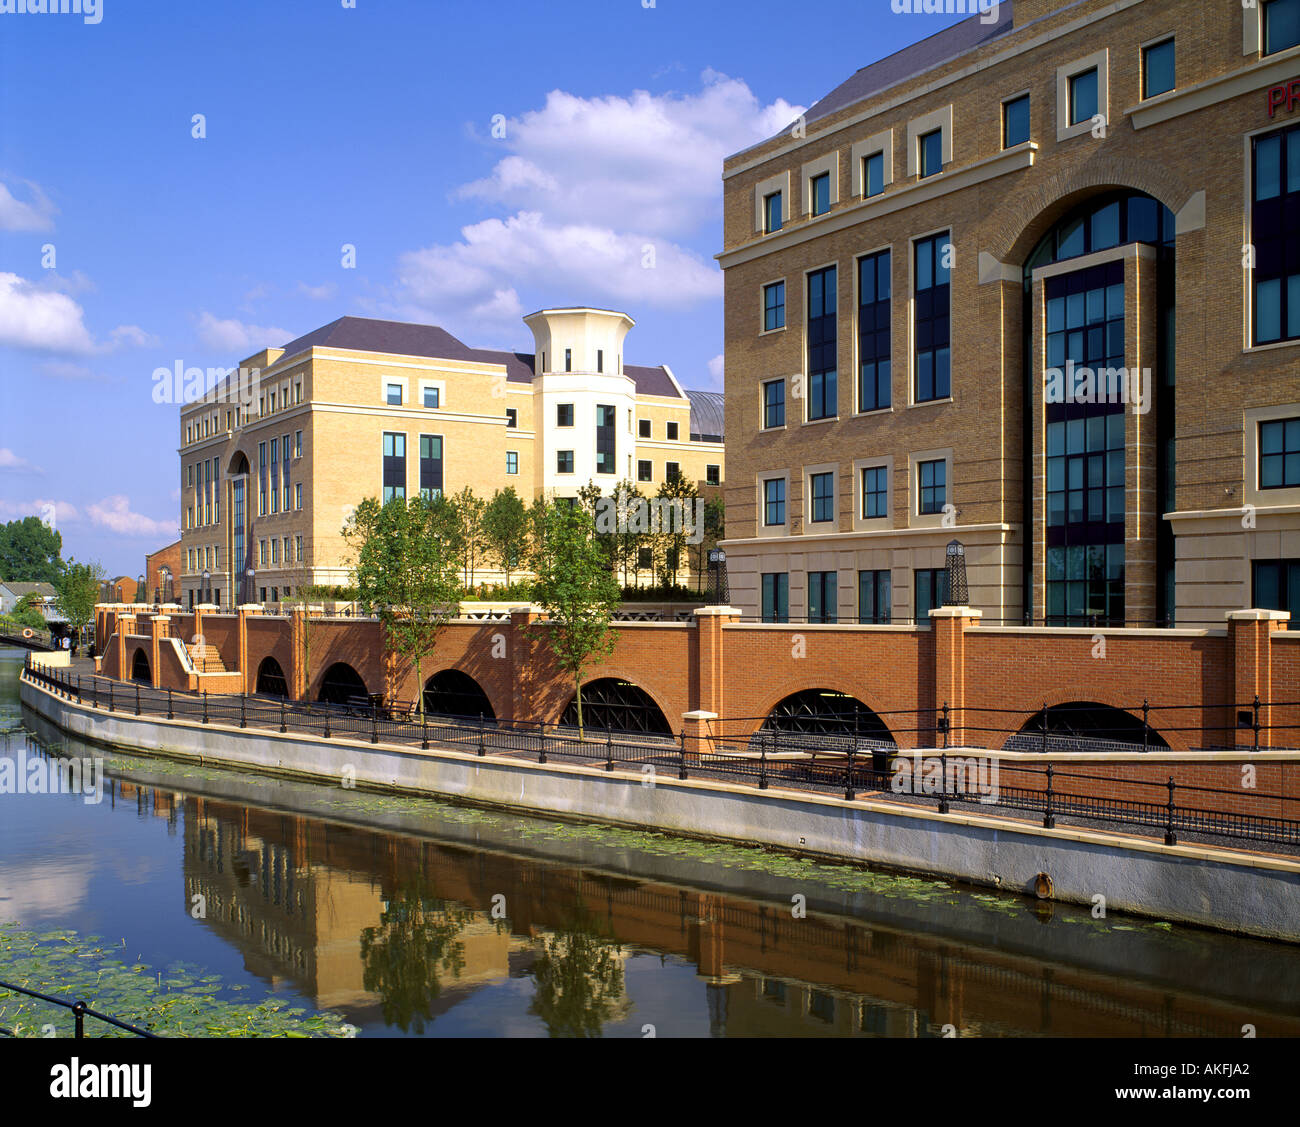 GB - BERKSHIRE: Kennet Avon Canal at Reading - Stock Image